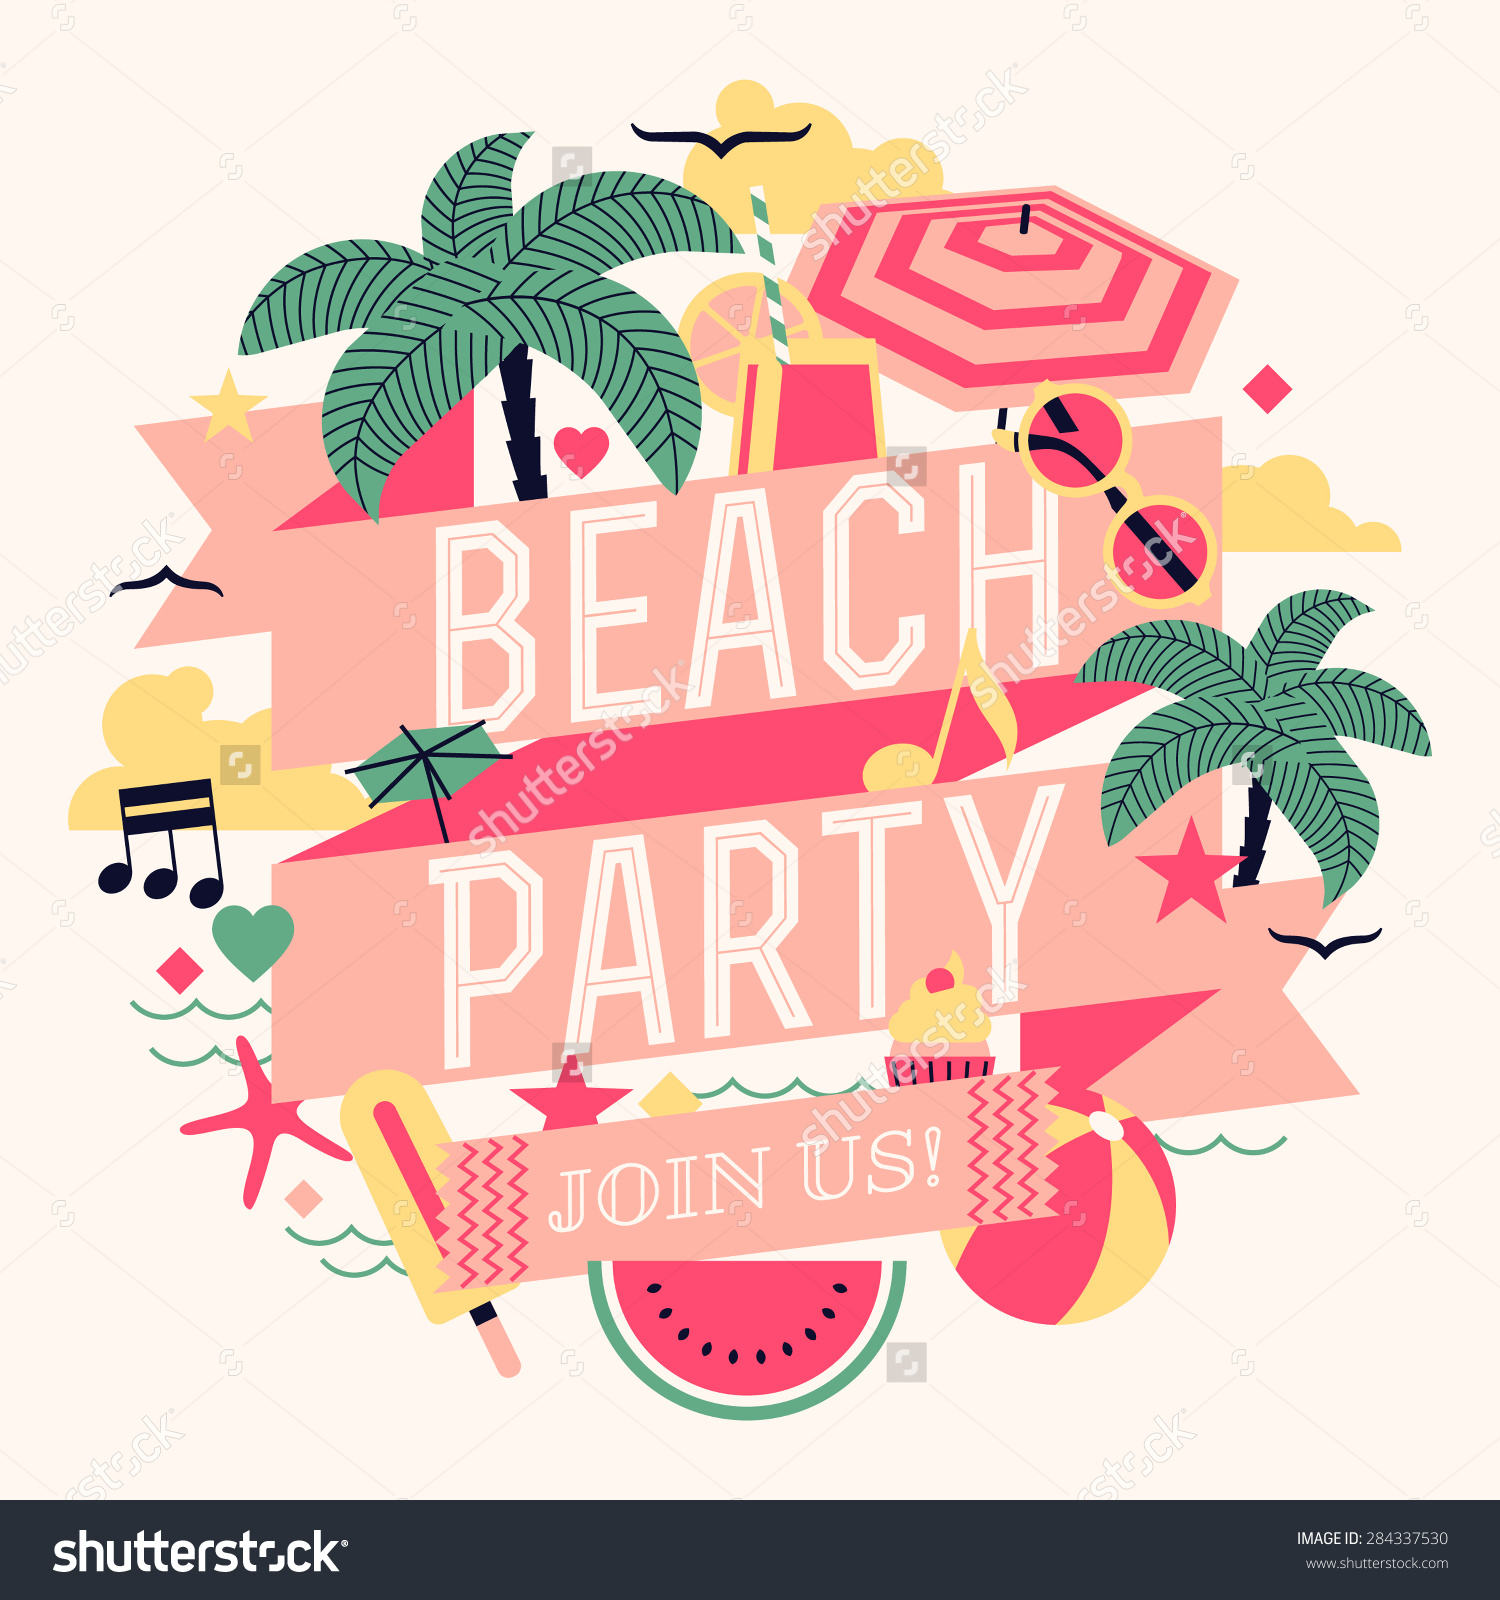 Beautiful Beach Party Design Element Palms Stock Vector 284337530.